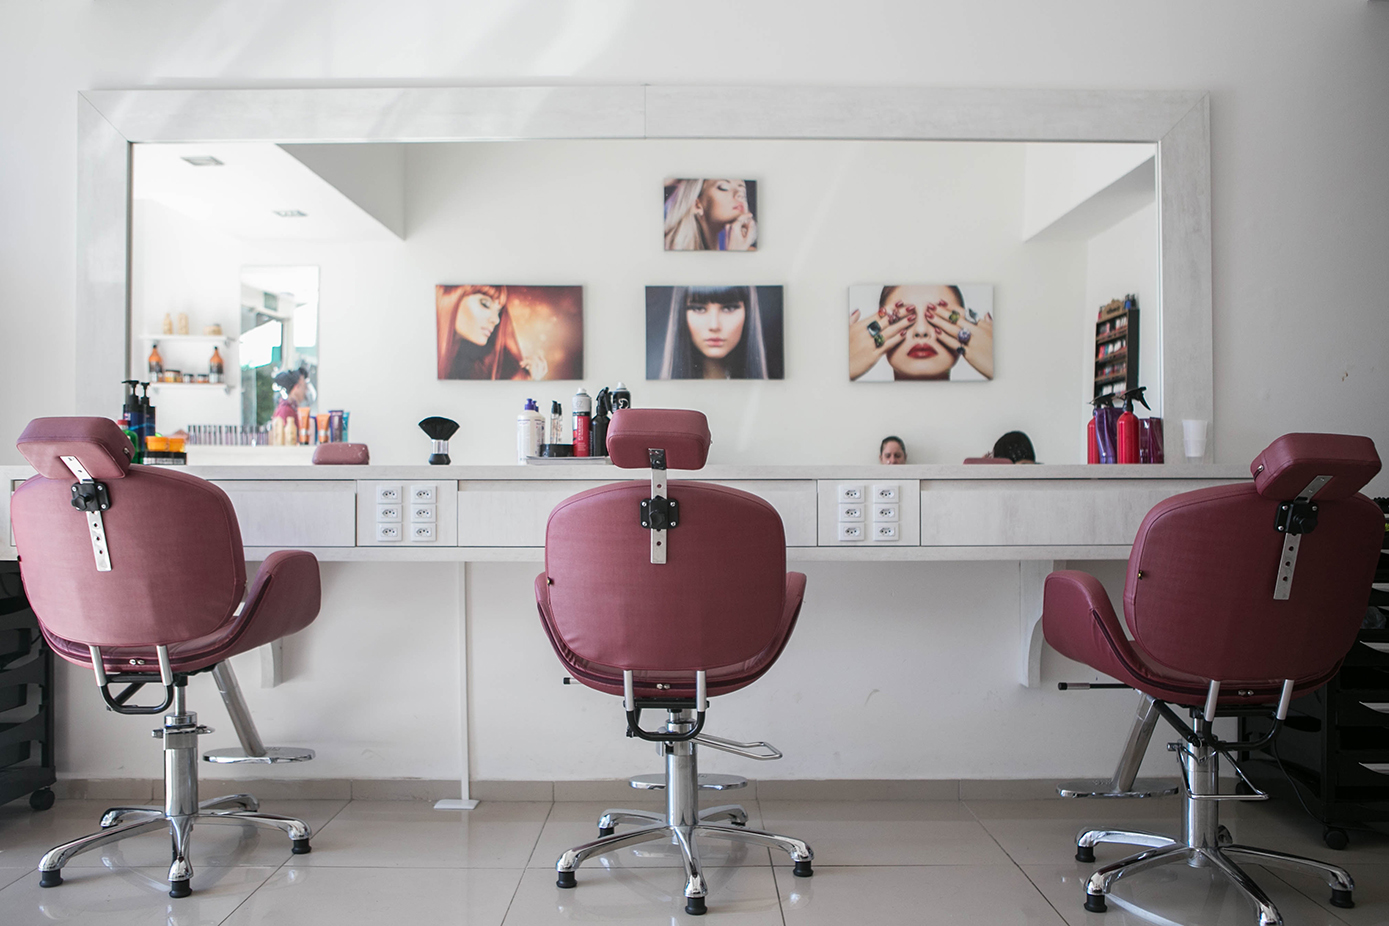 how to attract customers to a beauty salon